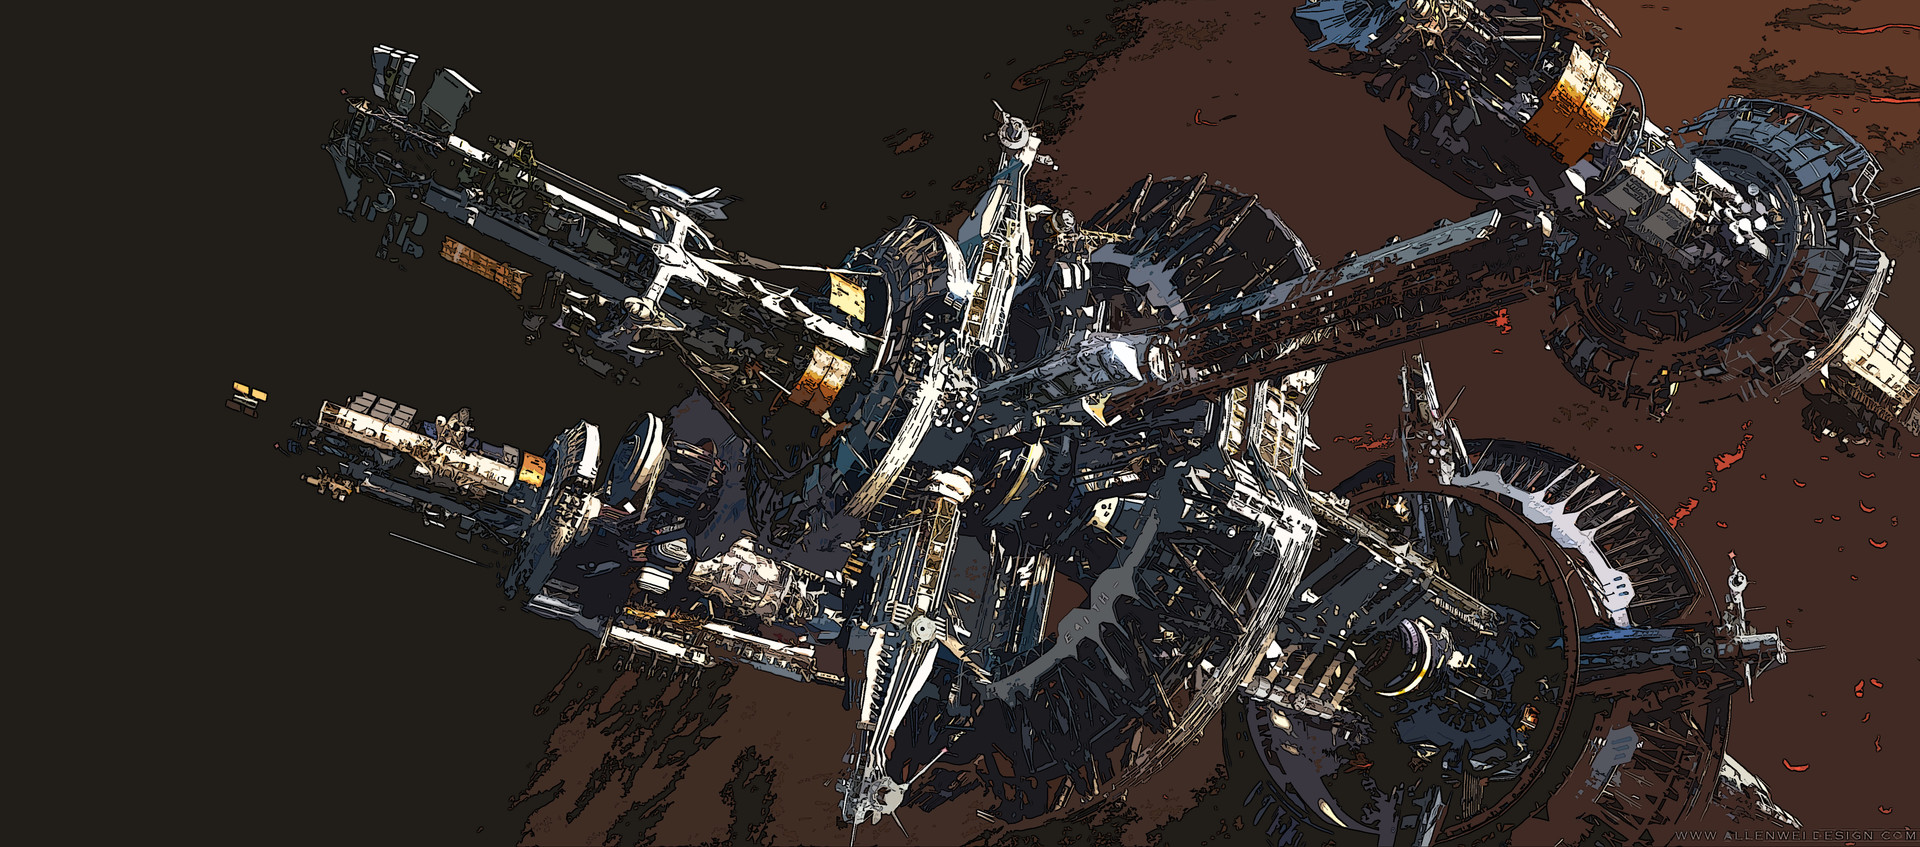 Allen wei space station earth color cutout